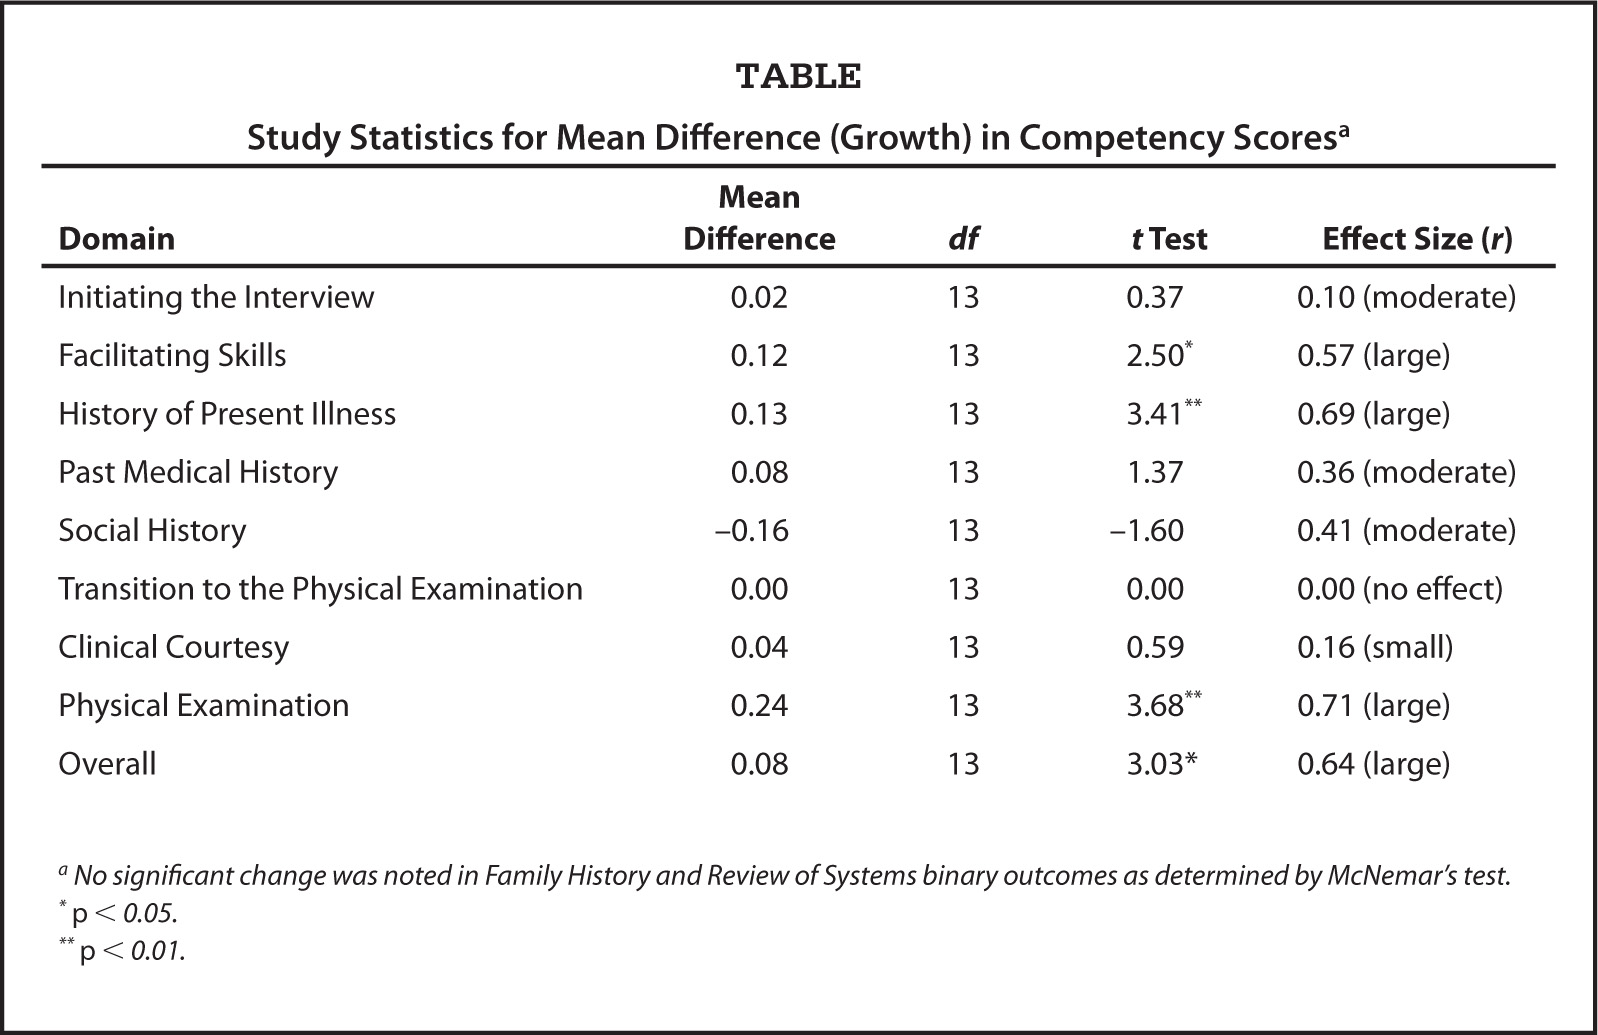 Study Statistics for Mean Difference (Growth) in Competency Scoresa